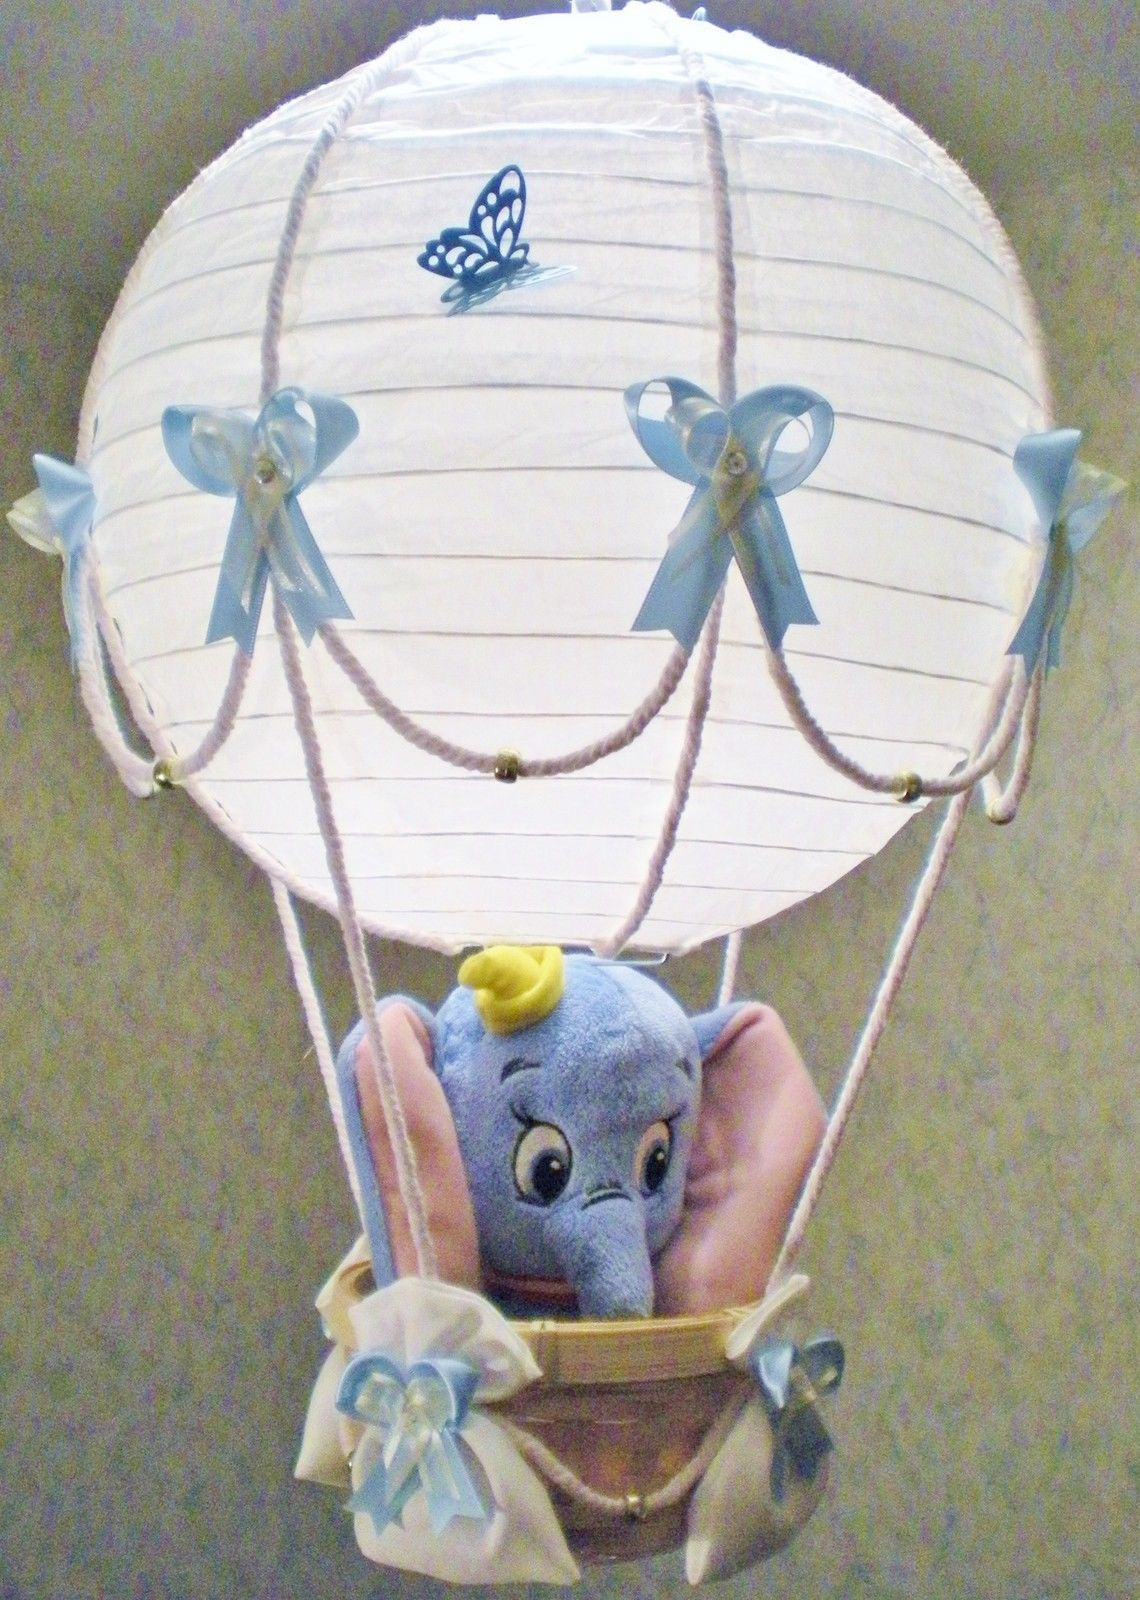 dumbo in hot air balloon lamp light shade for baby nursery ebay party pinterest lamp. Black Bedroom Furniture Sets. Home Design Ideas